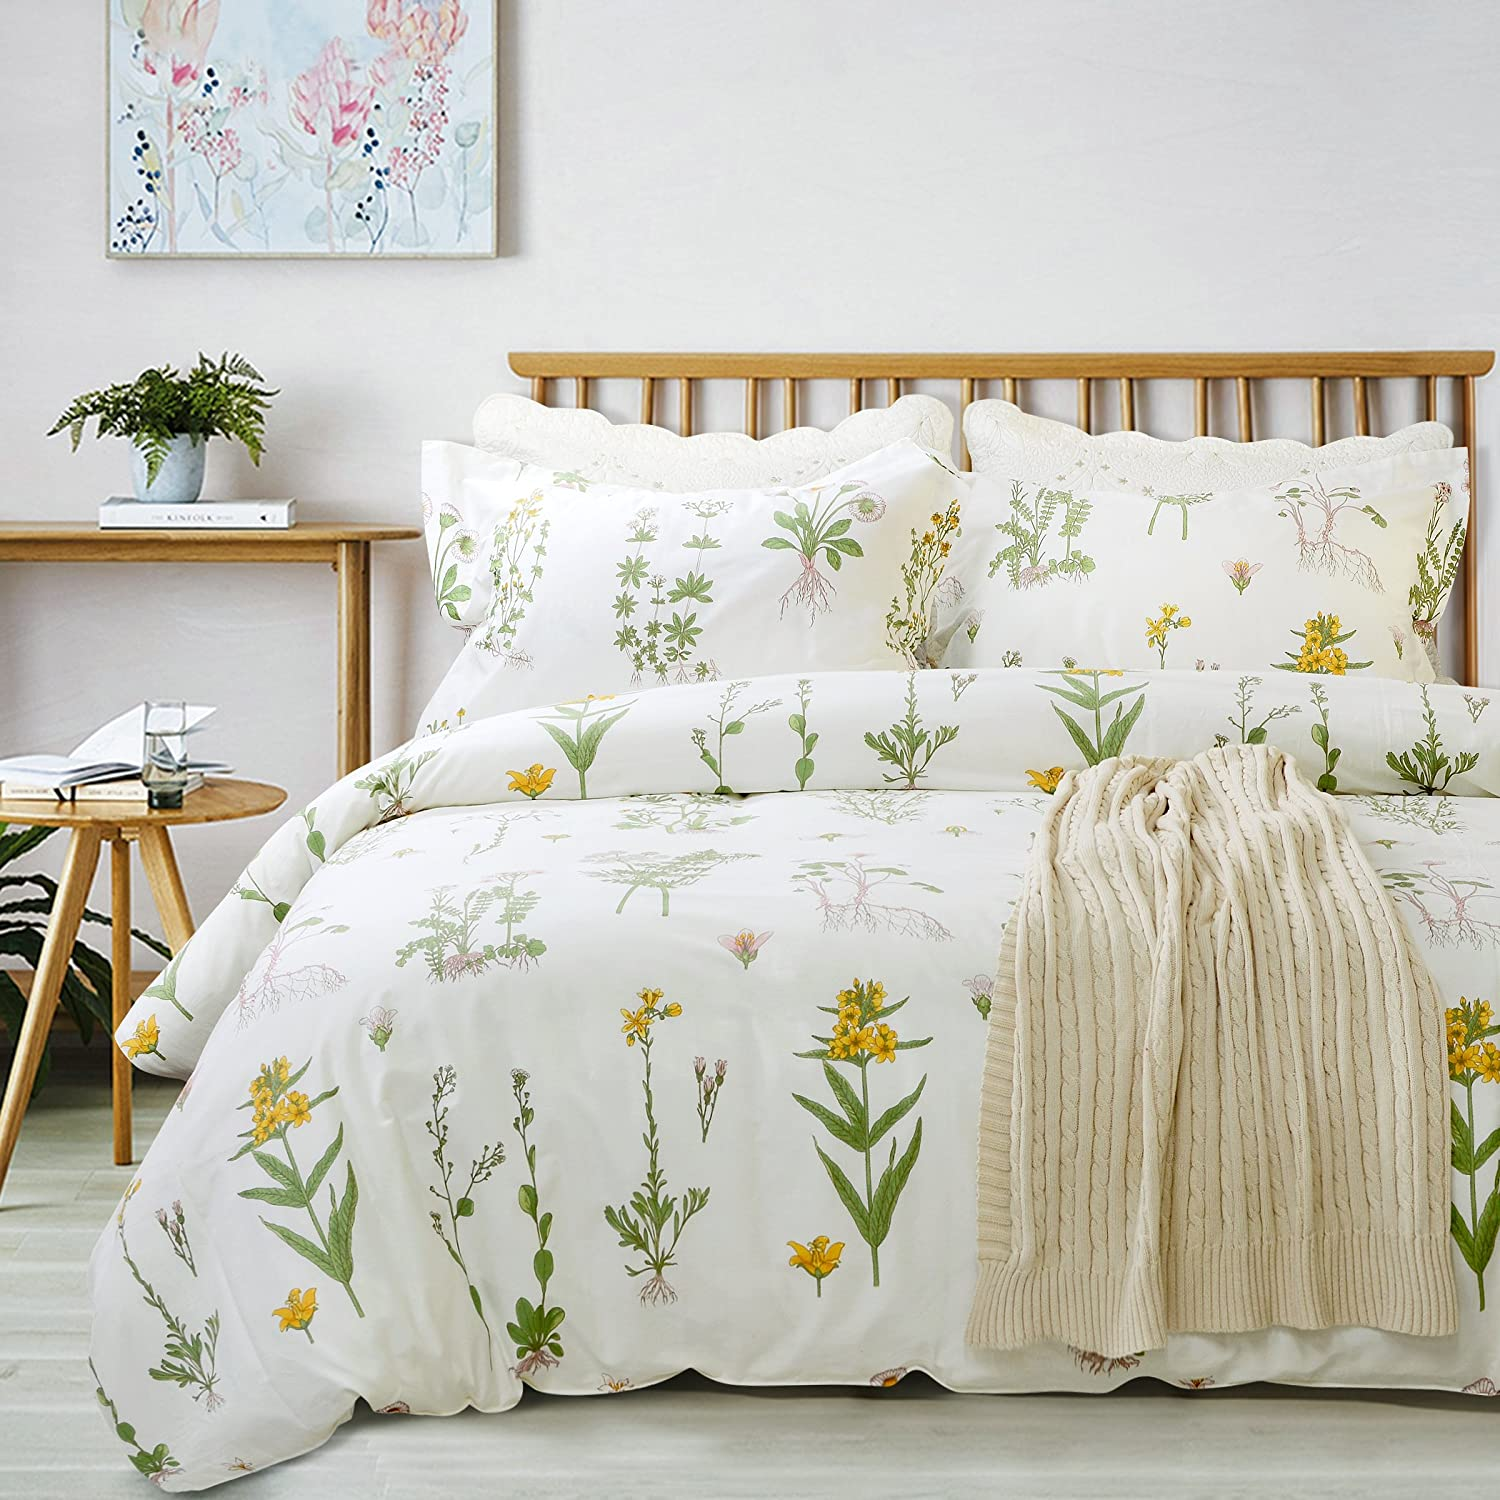 FADFAY Shabby Floral Duvet Cover Set White and Green Cotton Bedding Set with Hidden Zipper Closure 3 Pieces, 1duvet Cover & 2pillowcases (King/California King Size, Simple Style)